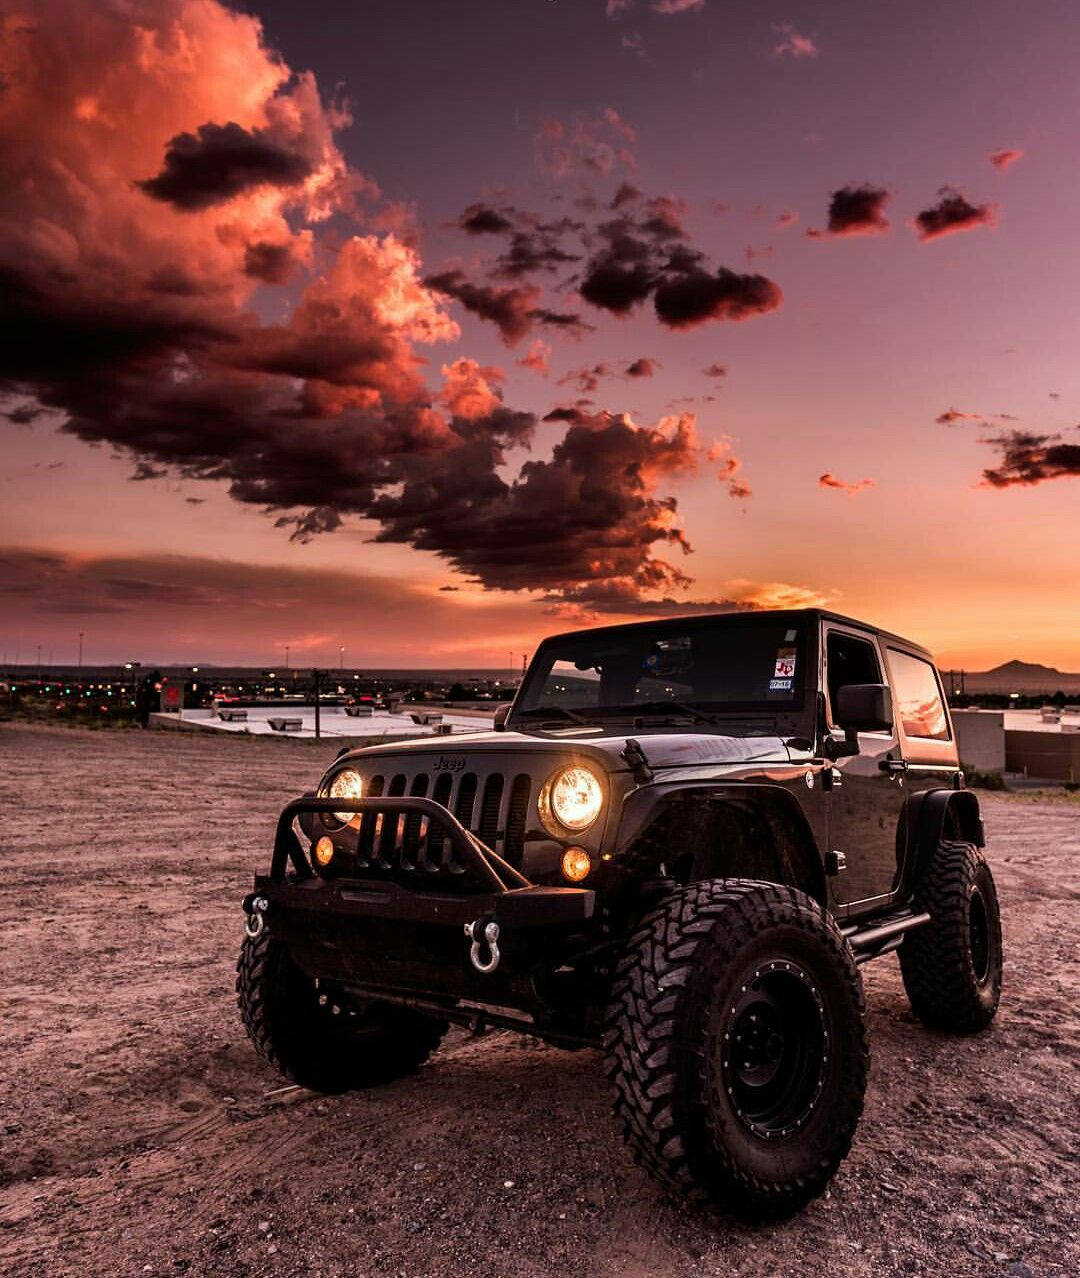 Pin By Lucy Babcock On Jeep Willys To Wrangler Jeep Wallpaper Jeep Photos Jeep Cars